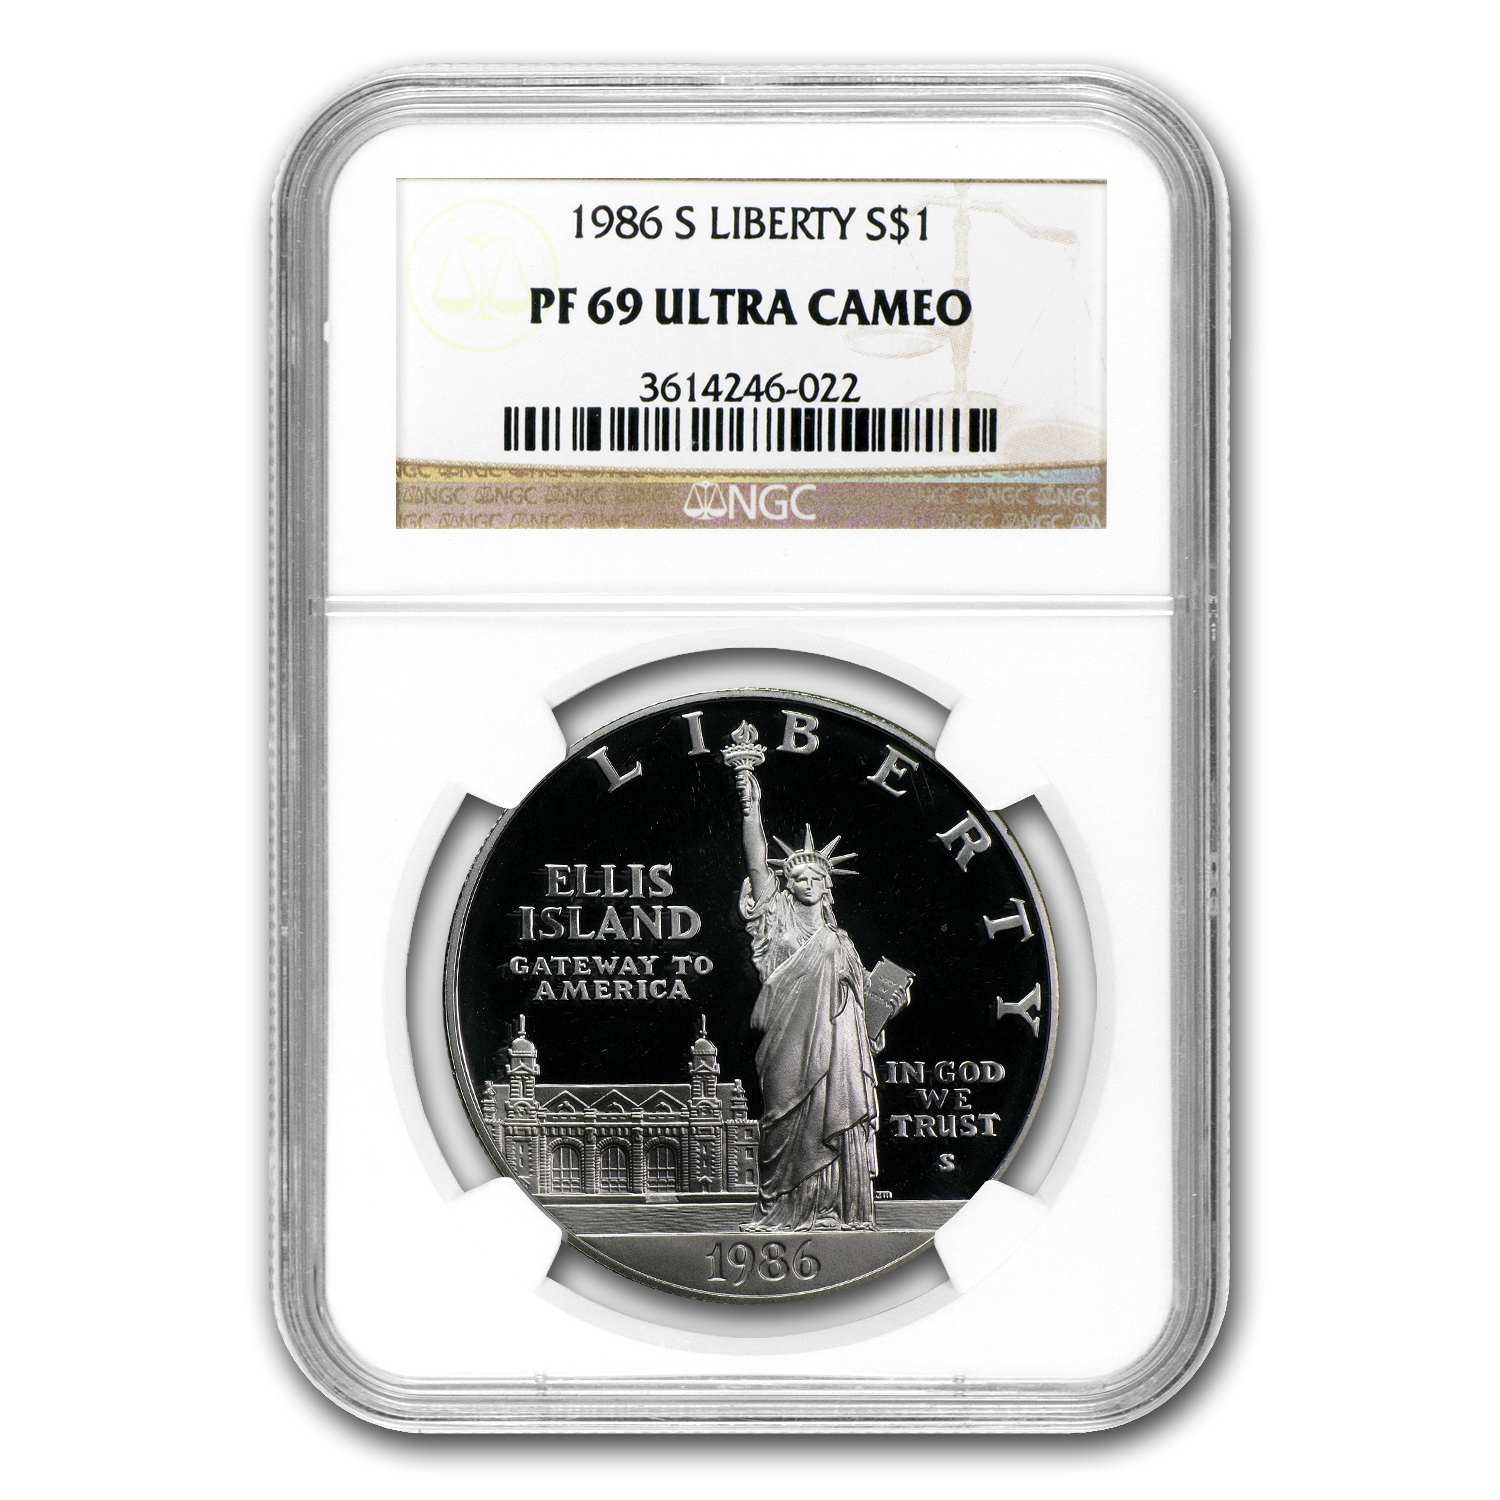 1986-S Statue of Liberty $1 Silver Commemorative PF-69 NGC